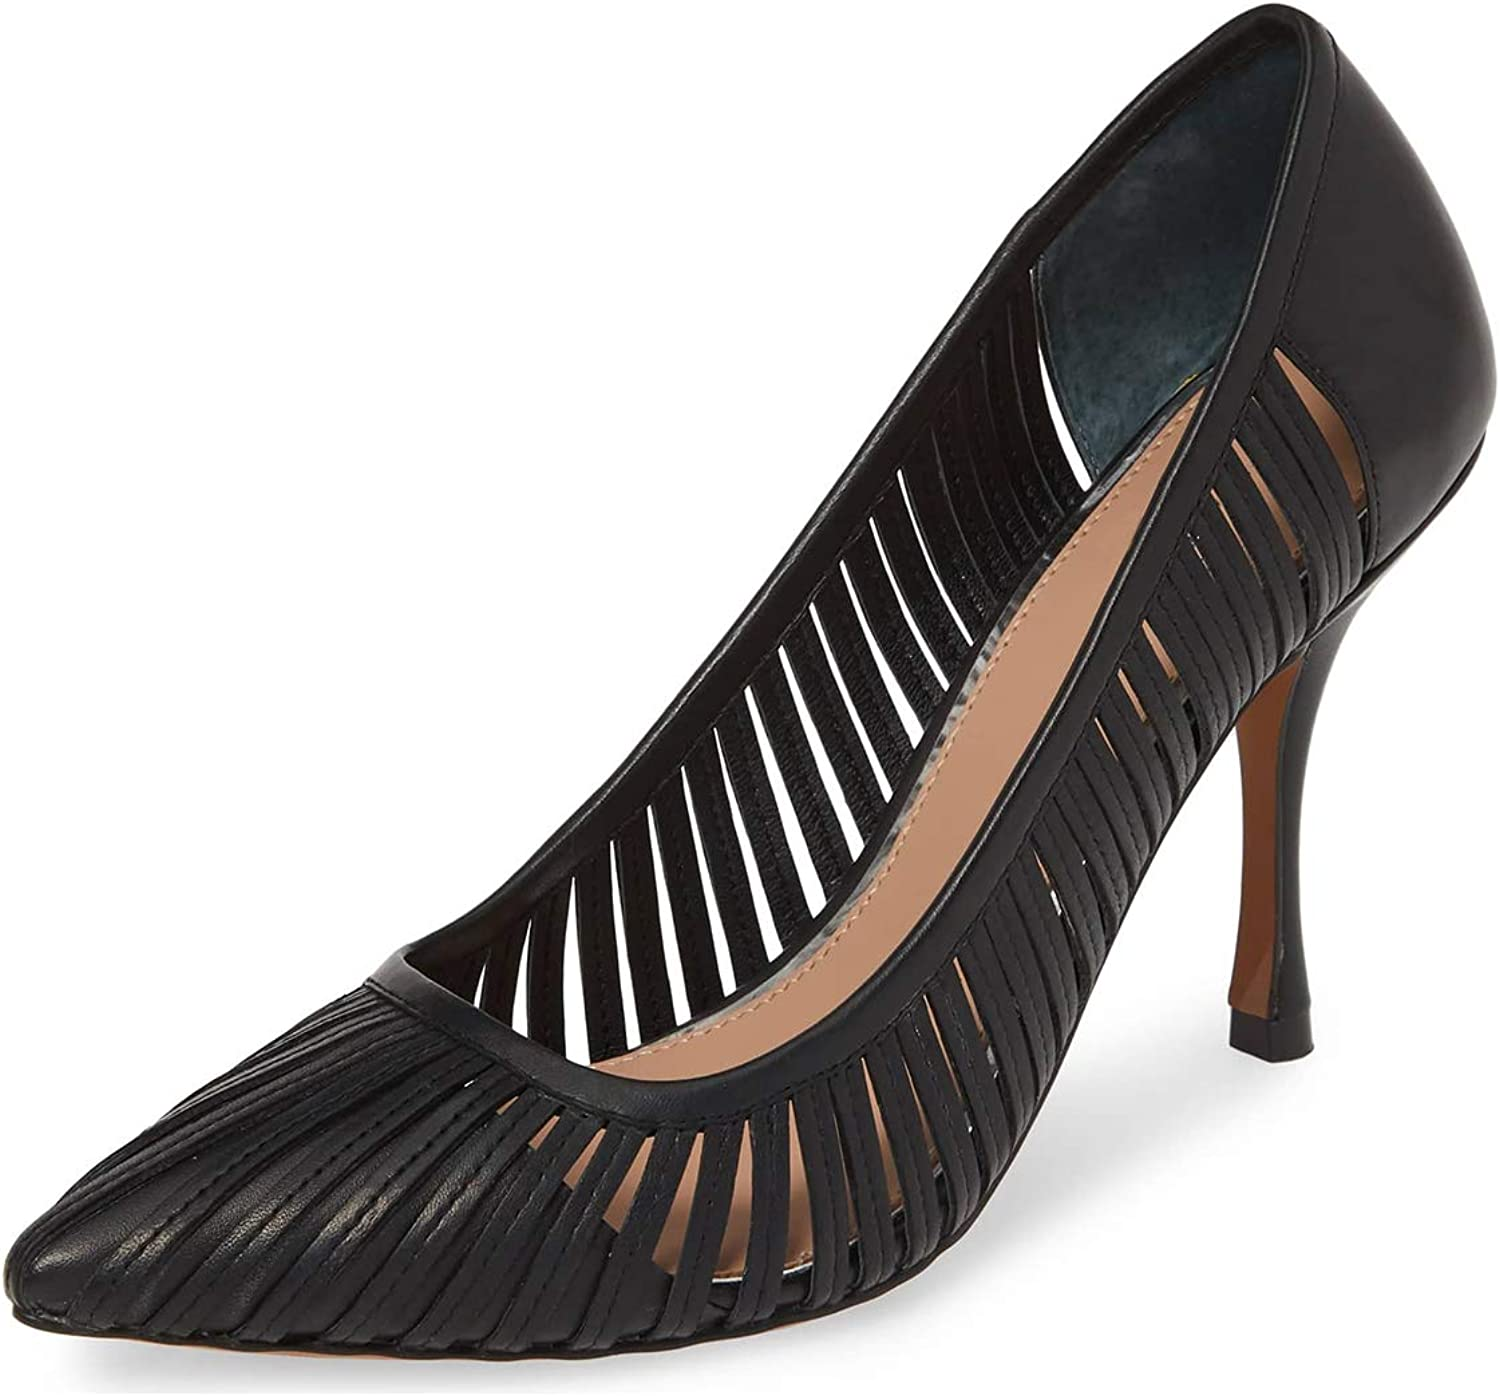 YDN Women Trendy Spike High Heel Hollow Out Pumps Pointy Toe Slip On Leather Evening Dress shoes